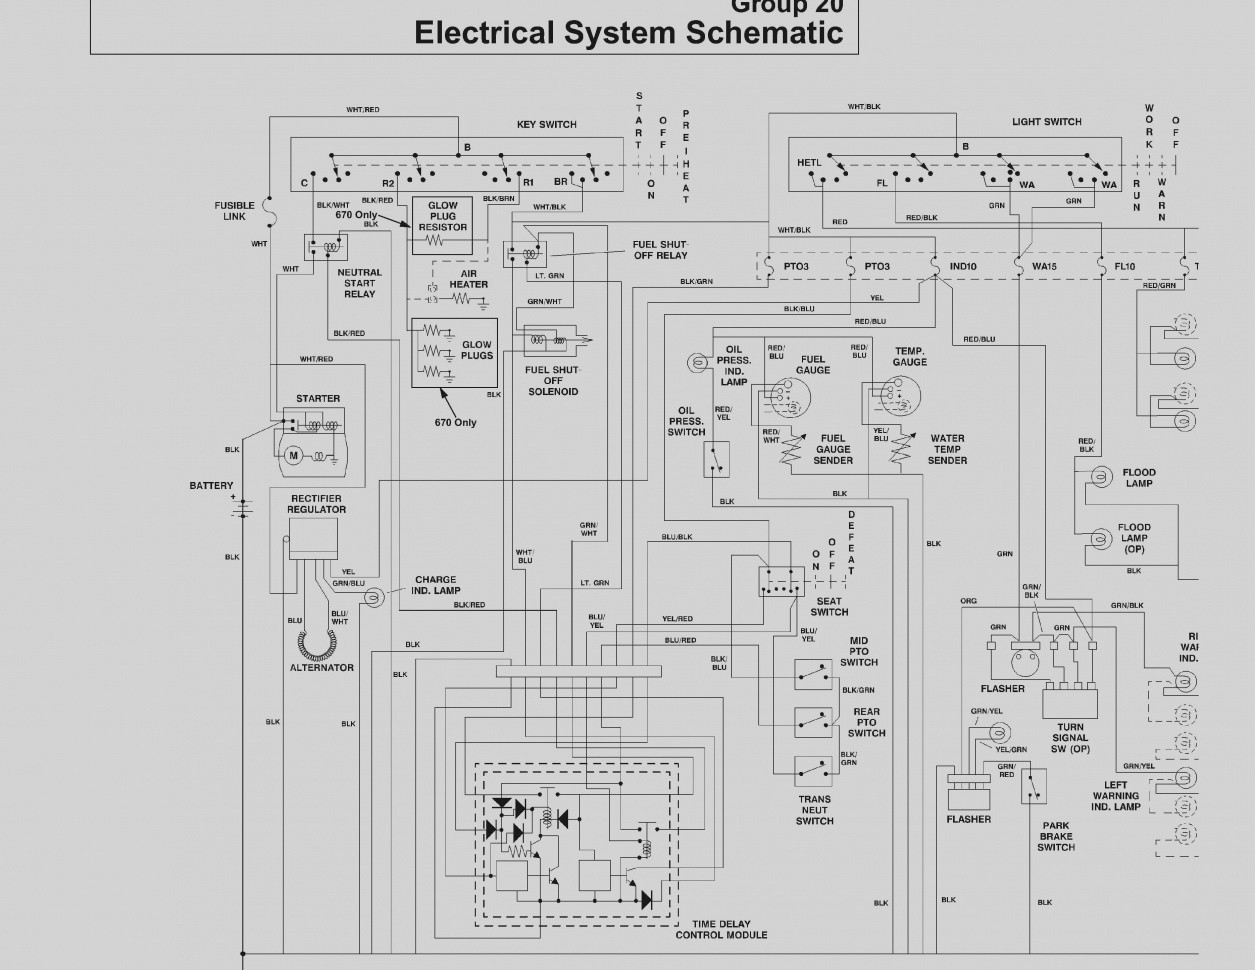 5D9E813 John Deere 318 Electrical Wiring Diagram | Wiring ... on john deere pto diagram, john deere lawn mower parts diagram, john deere x320 drive belt diagram, craftsman riding lawn mower wiring diagram, john deere 4020 hydraulic pump diagram, john deere 318 engine diagram,